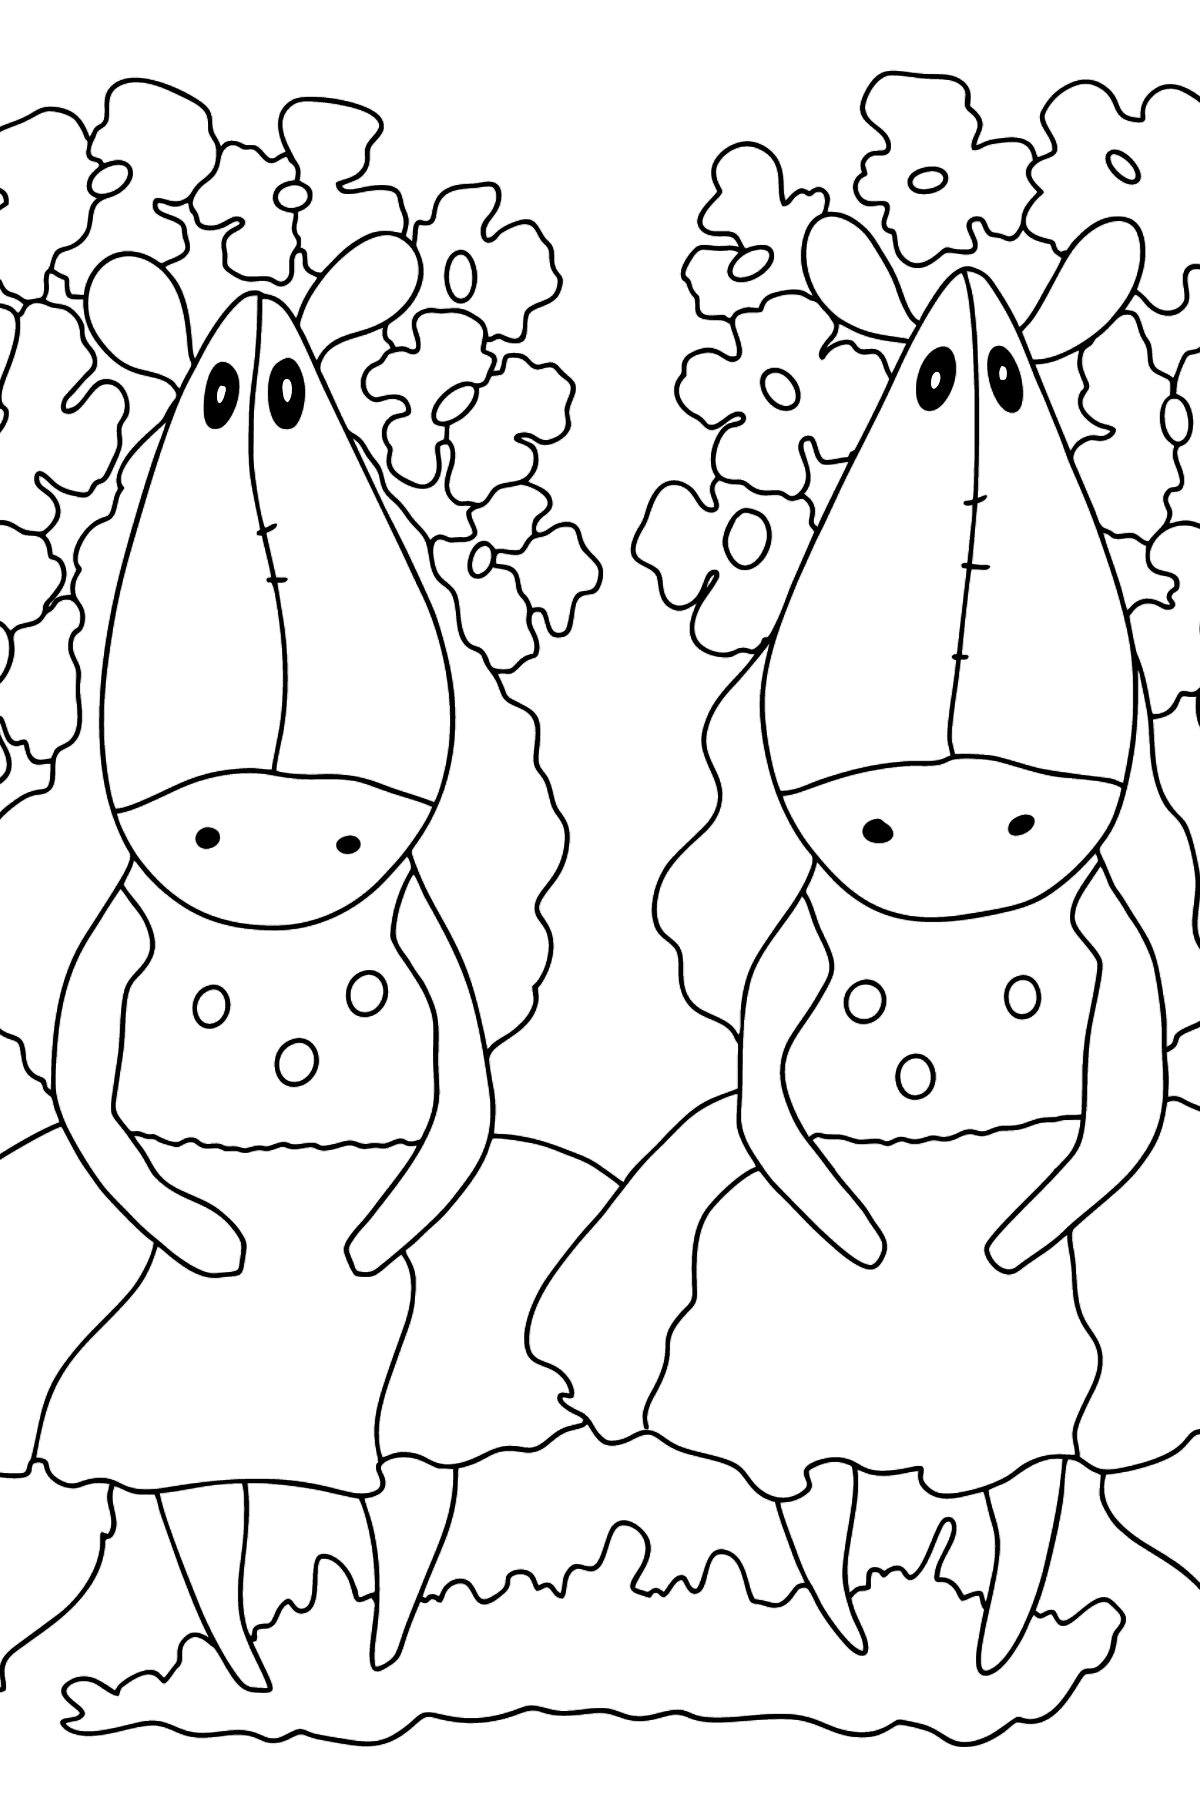 Complex coloring page a couple of horses - Coloring Pages for Kids